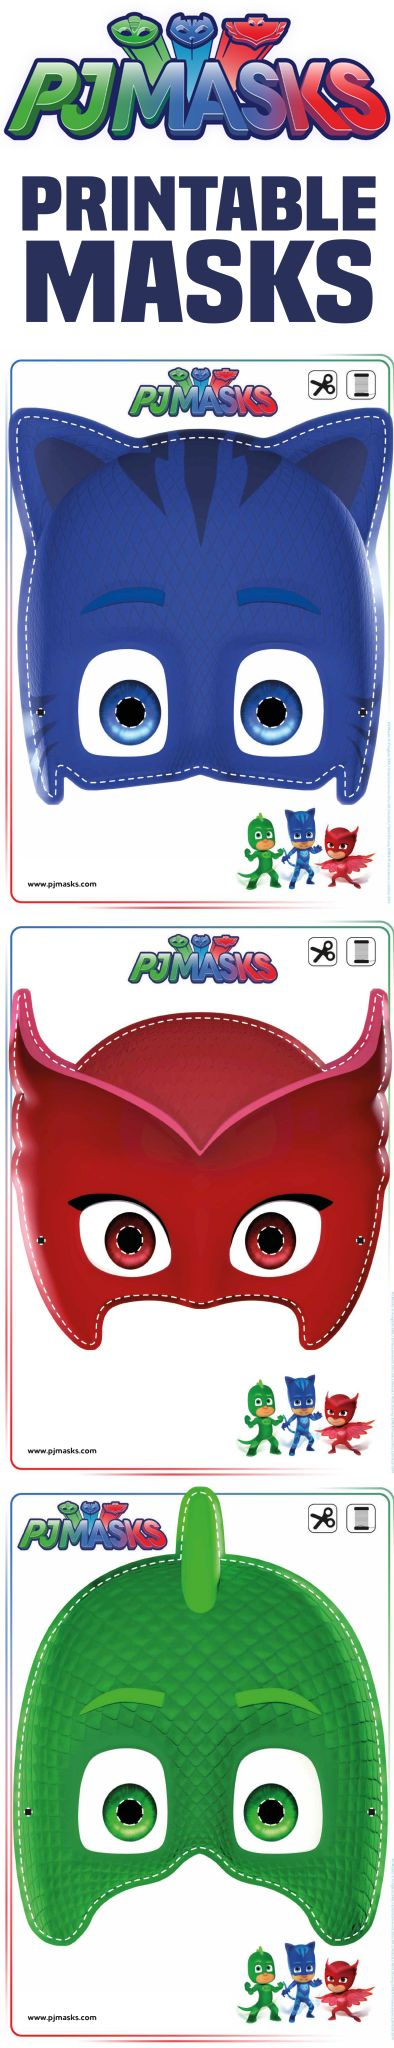 Masks Printables And Mask Party On Pinterest